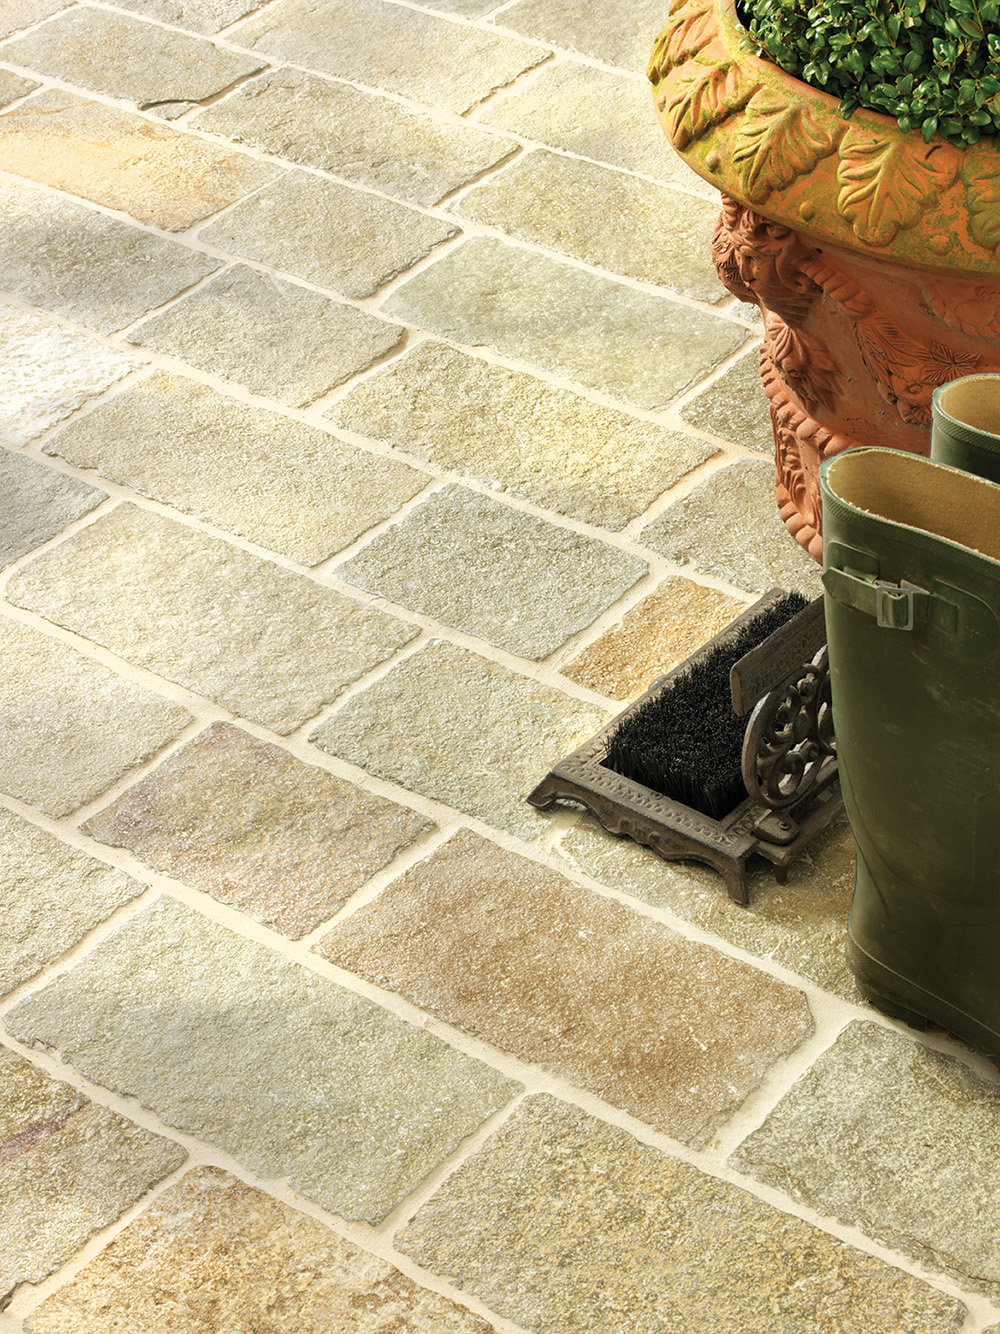 How To Care For Your Limestone Flooring Chaos Bakery